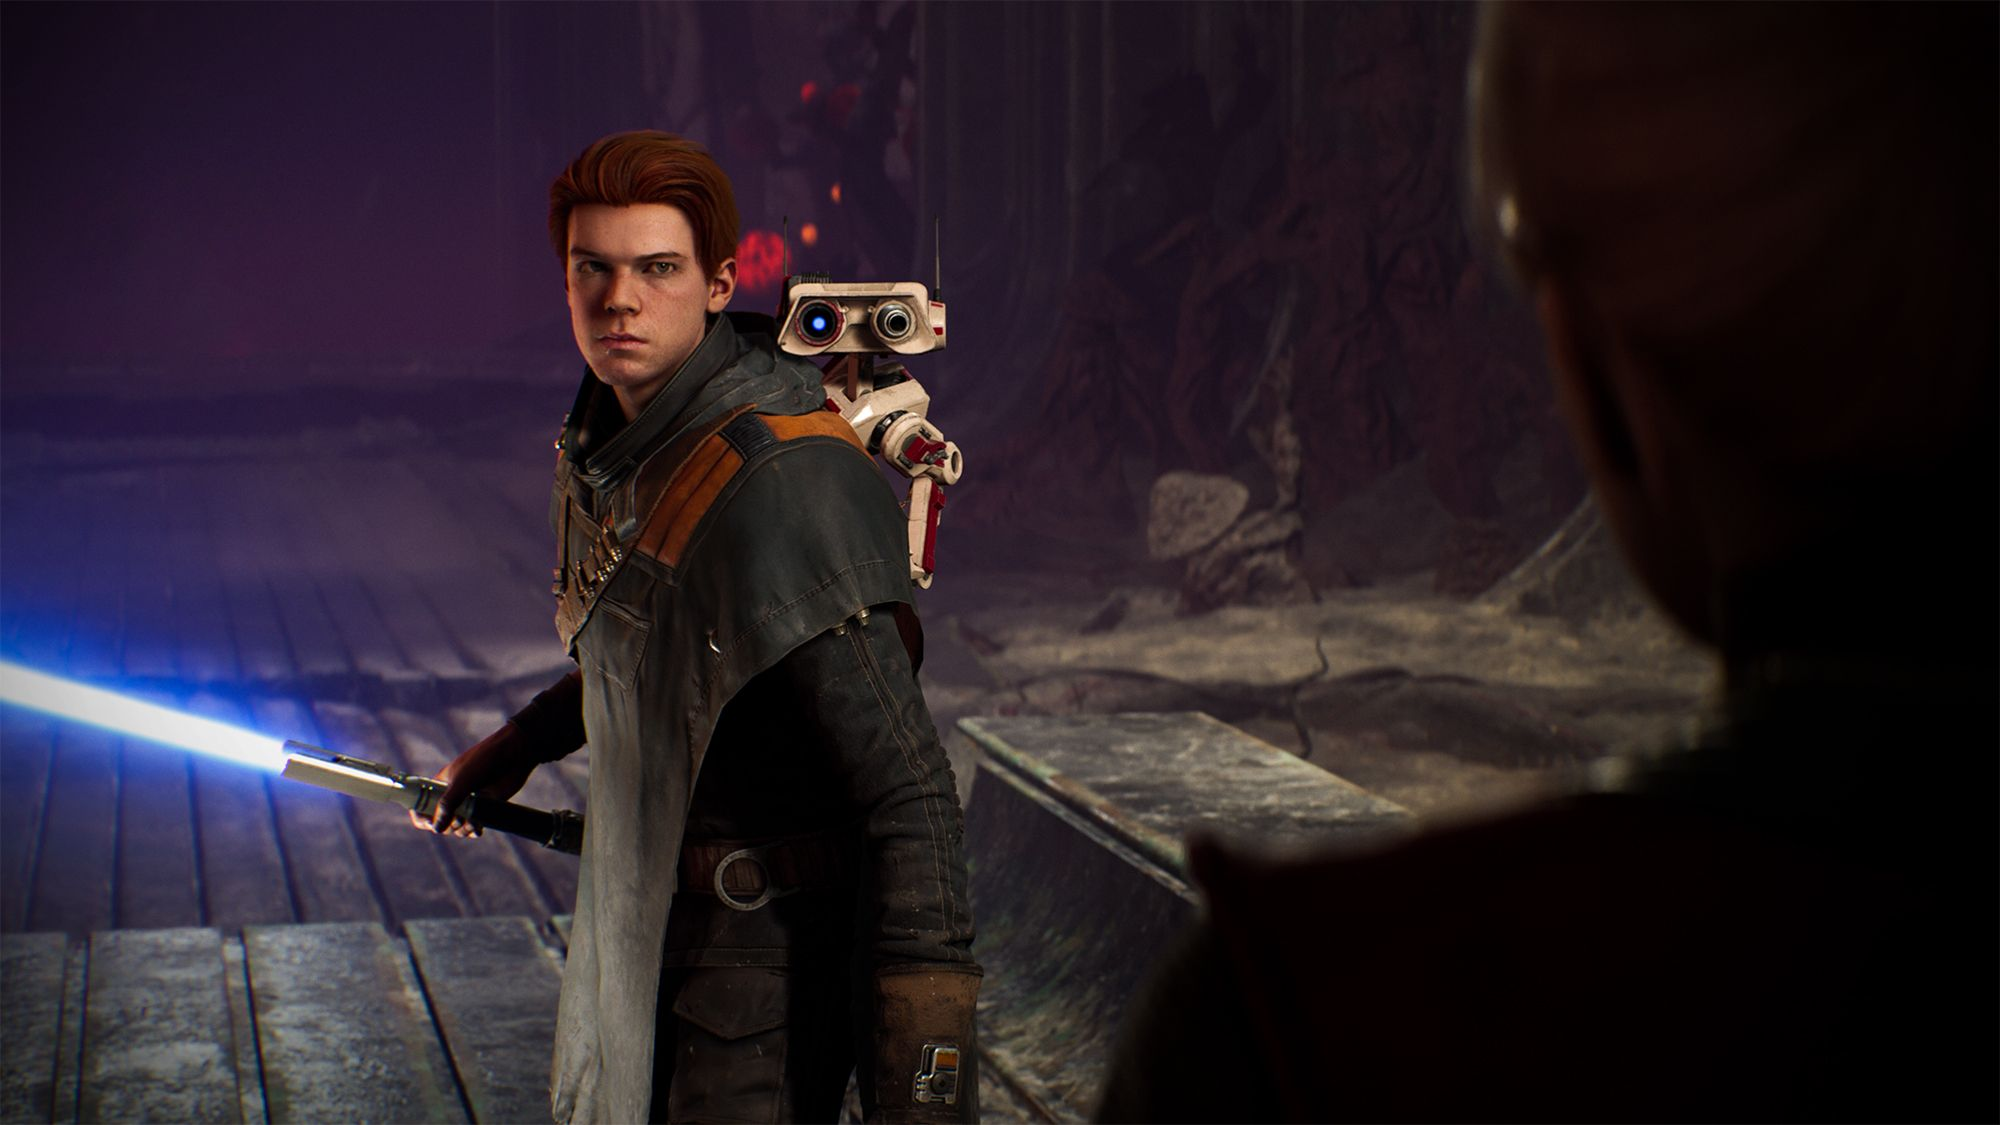 Star Wars Jedi: Fallen Order's Director Knew 'Thoughtful, Grounded' Fighting Gameplay Would Matter Most